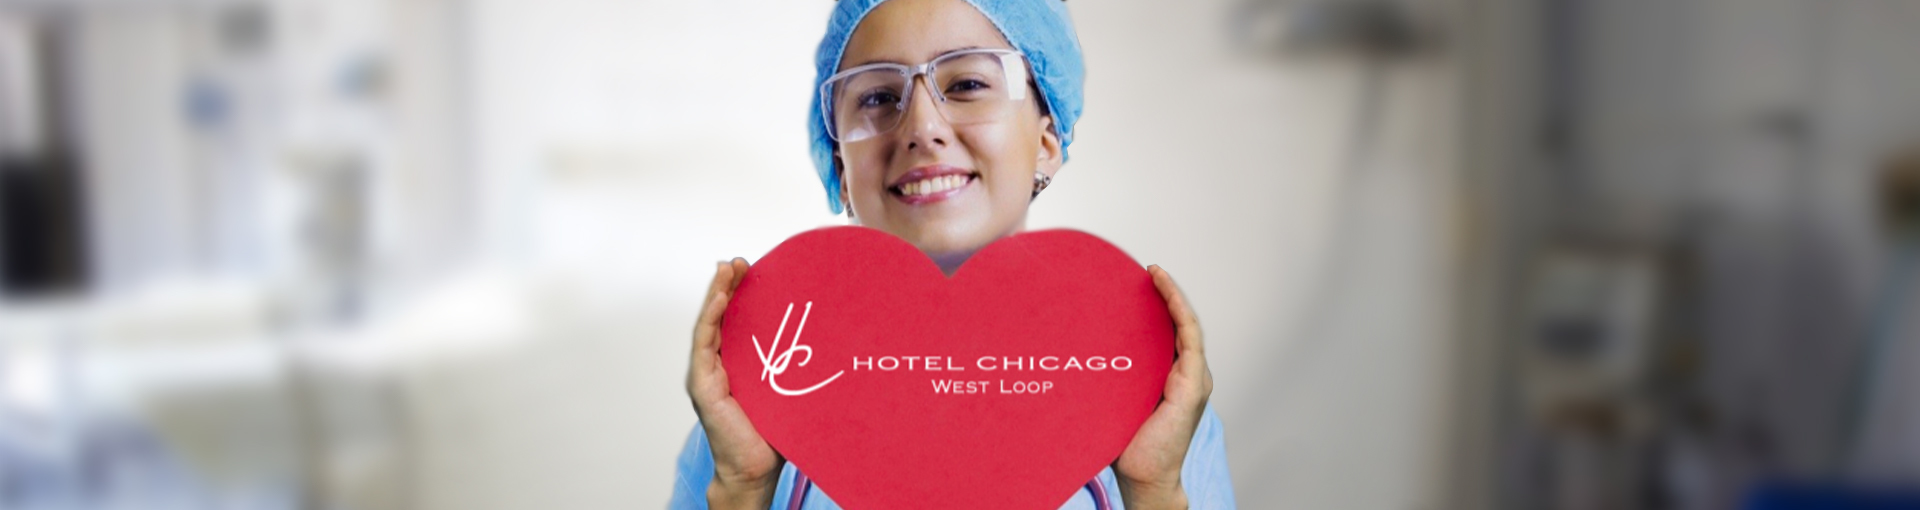 hotelchicago header